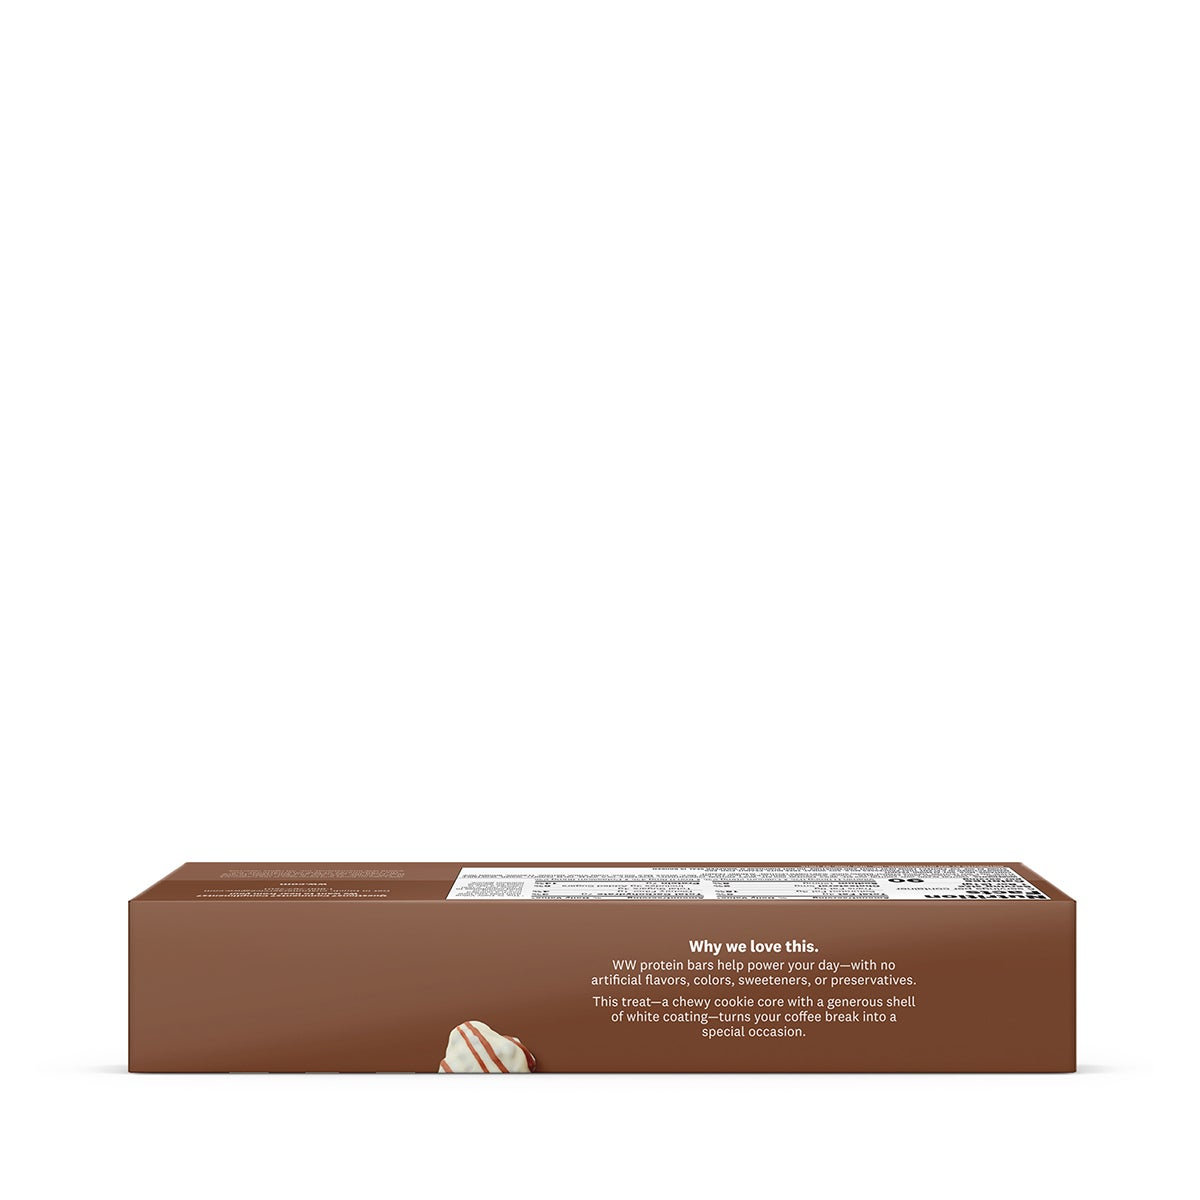 Black and White Baked Protein Bar - side of box 2